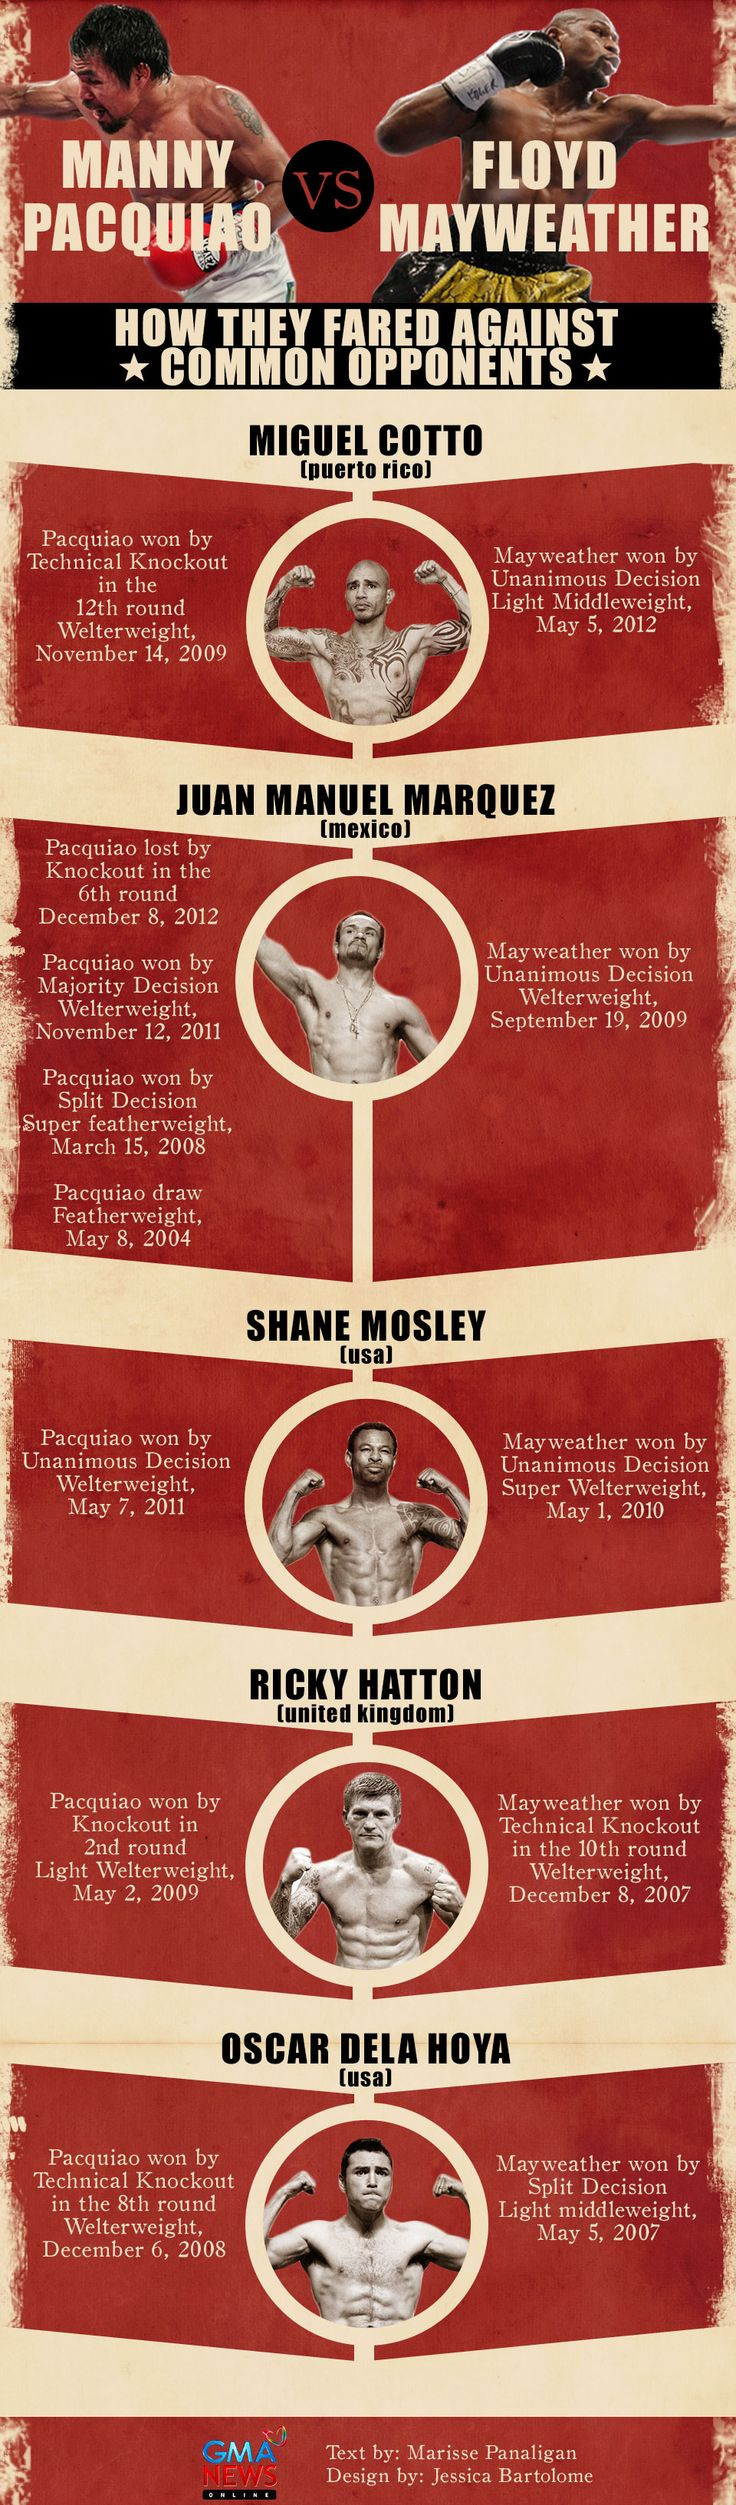 INFOGRAPHIC: How Manny Pacquiao, Floyd Mayweather have fared against common opponents| Pacquiao vs. Mayweather - GMA News Online Special Coverage